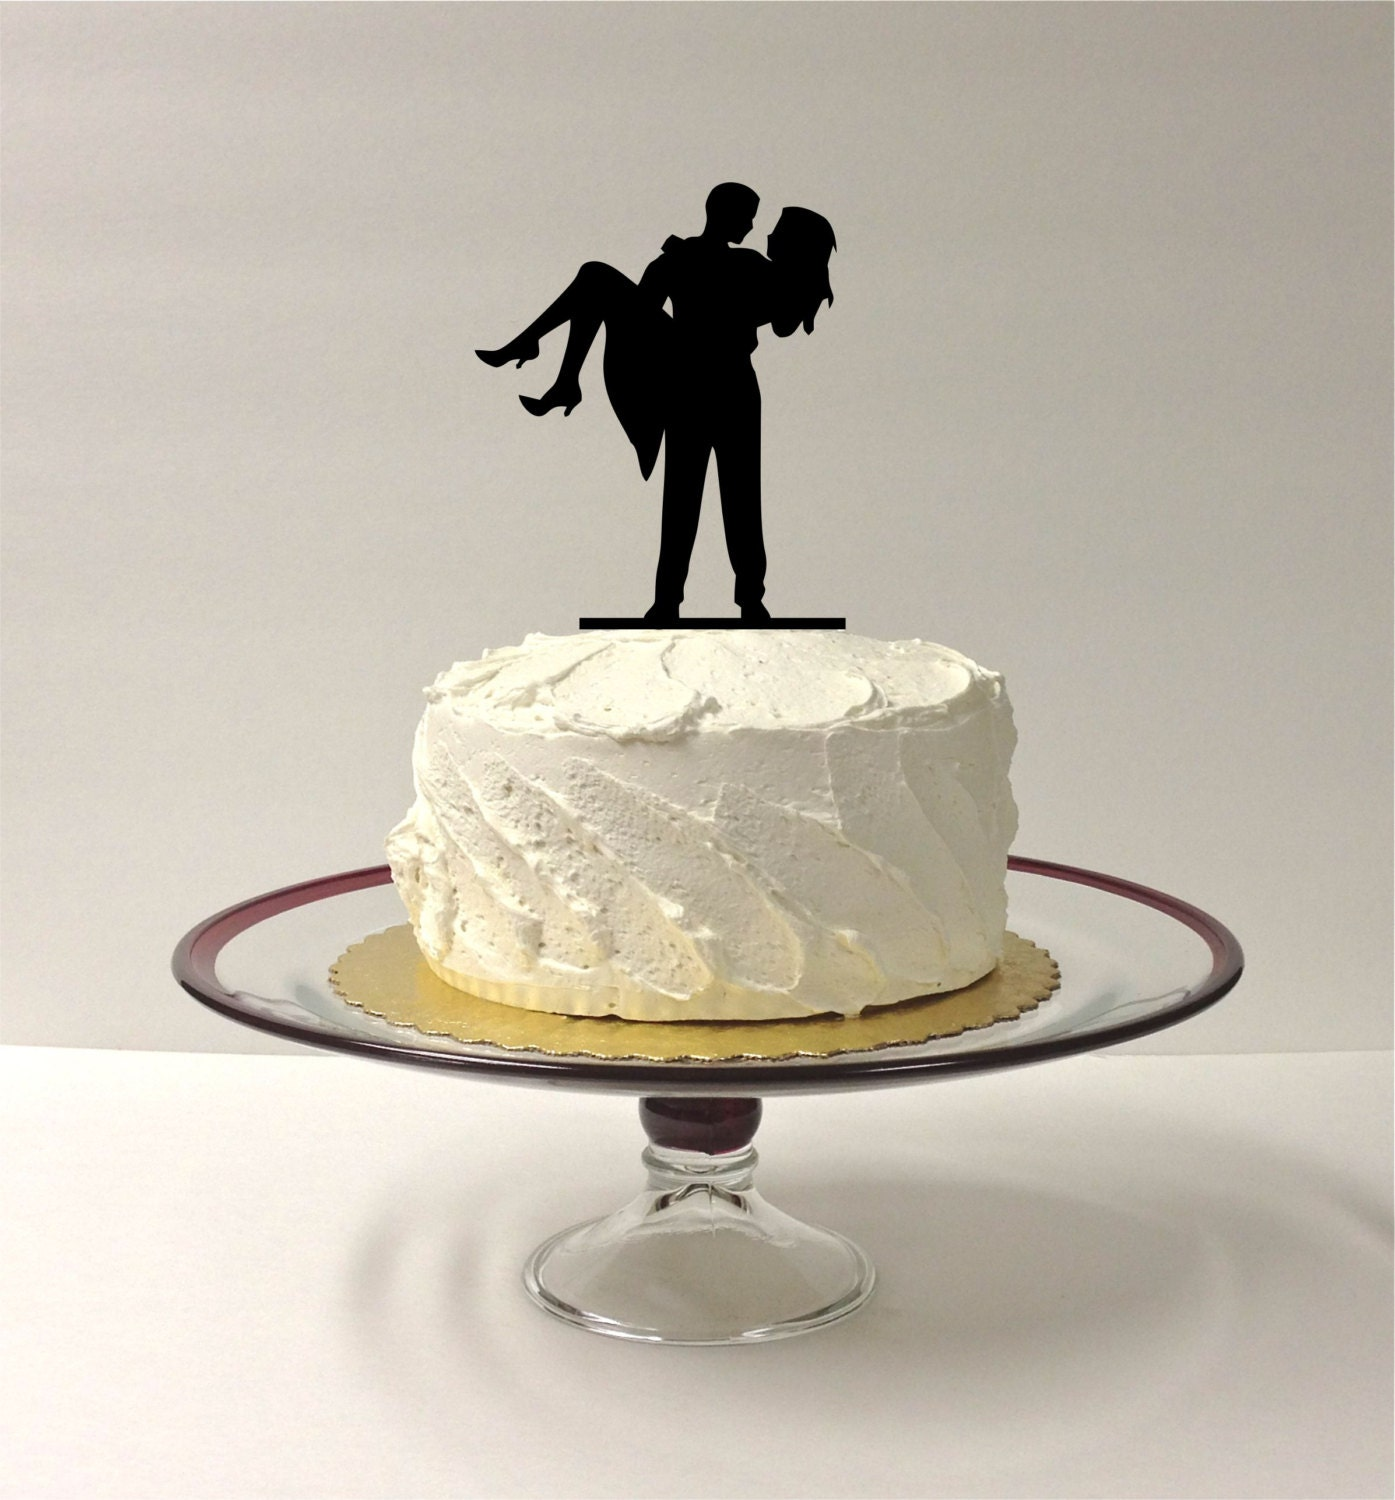 wedding cake toppers springfield mo made in usa silhouette wedding cake topper and 26598